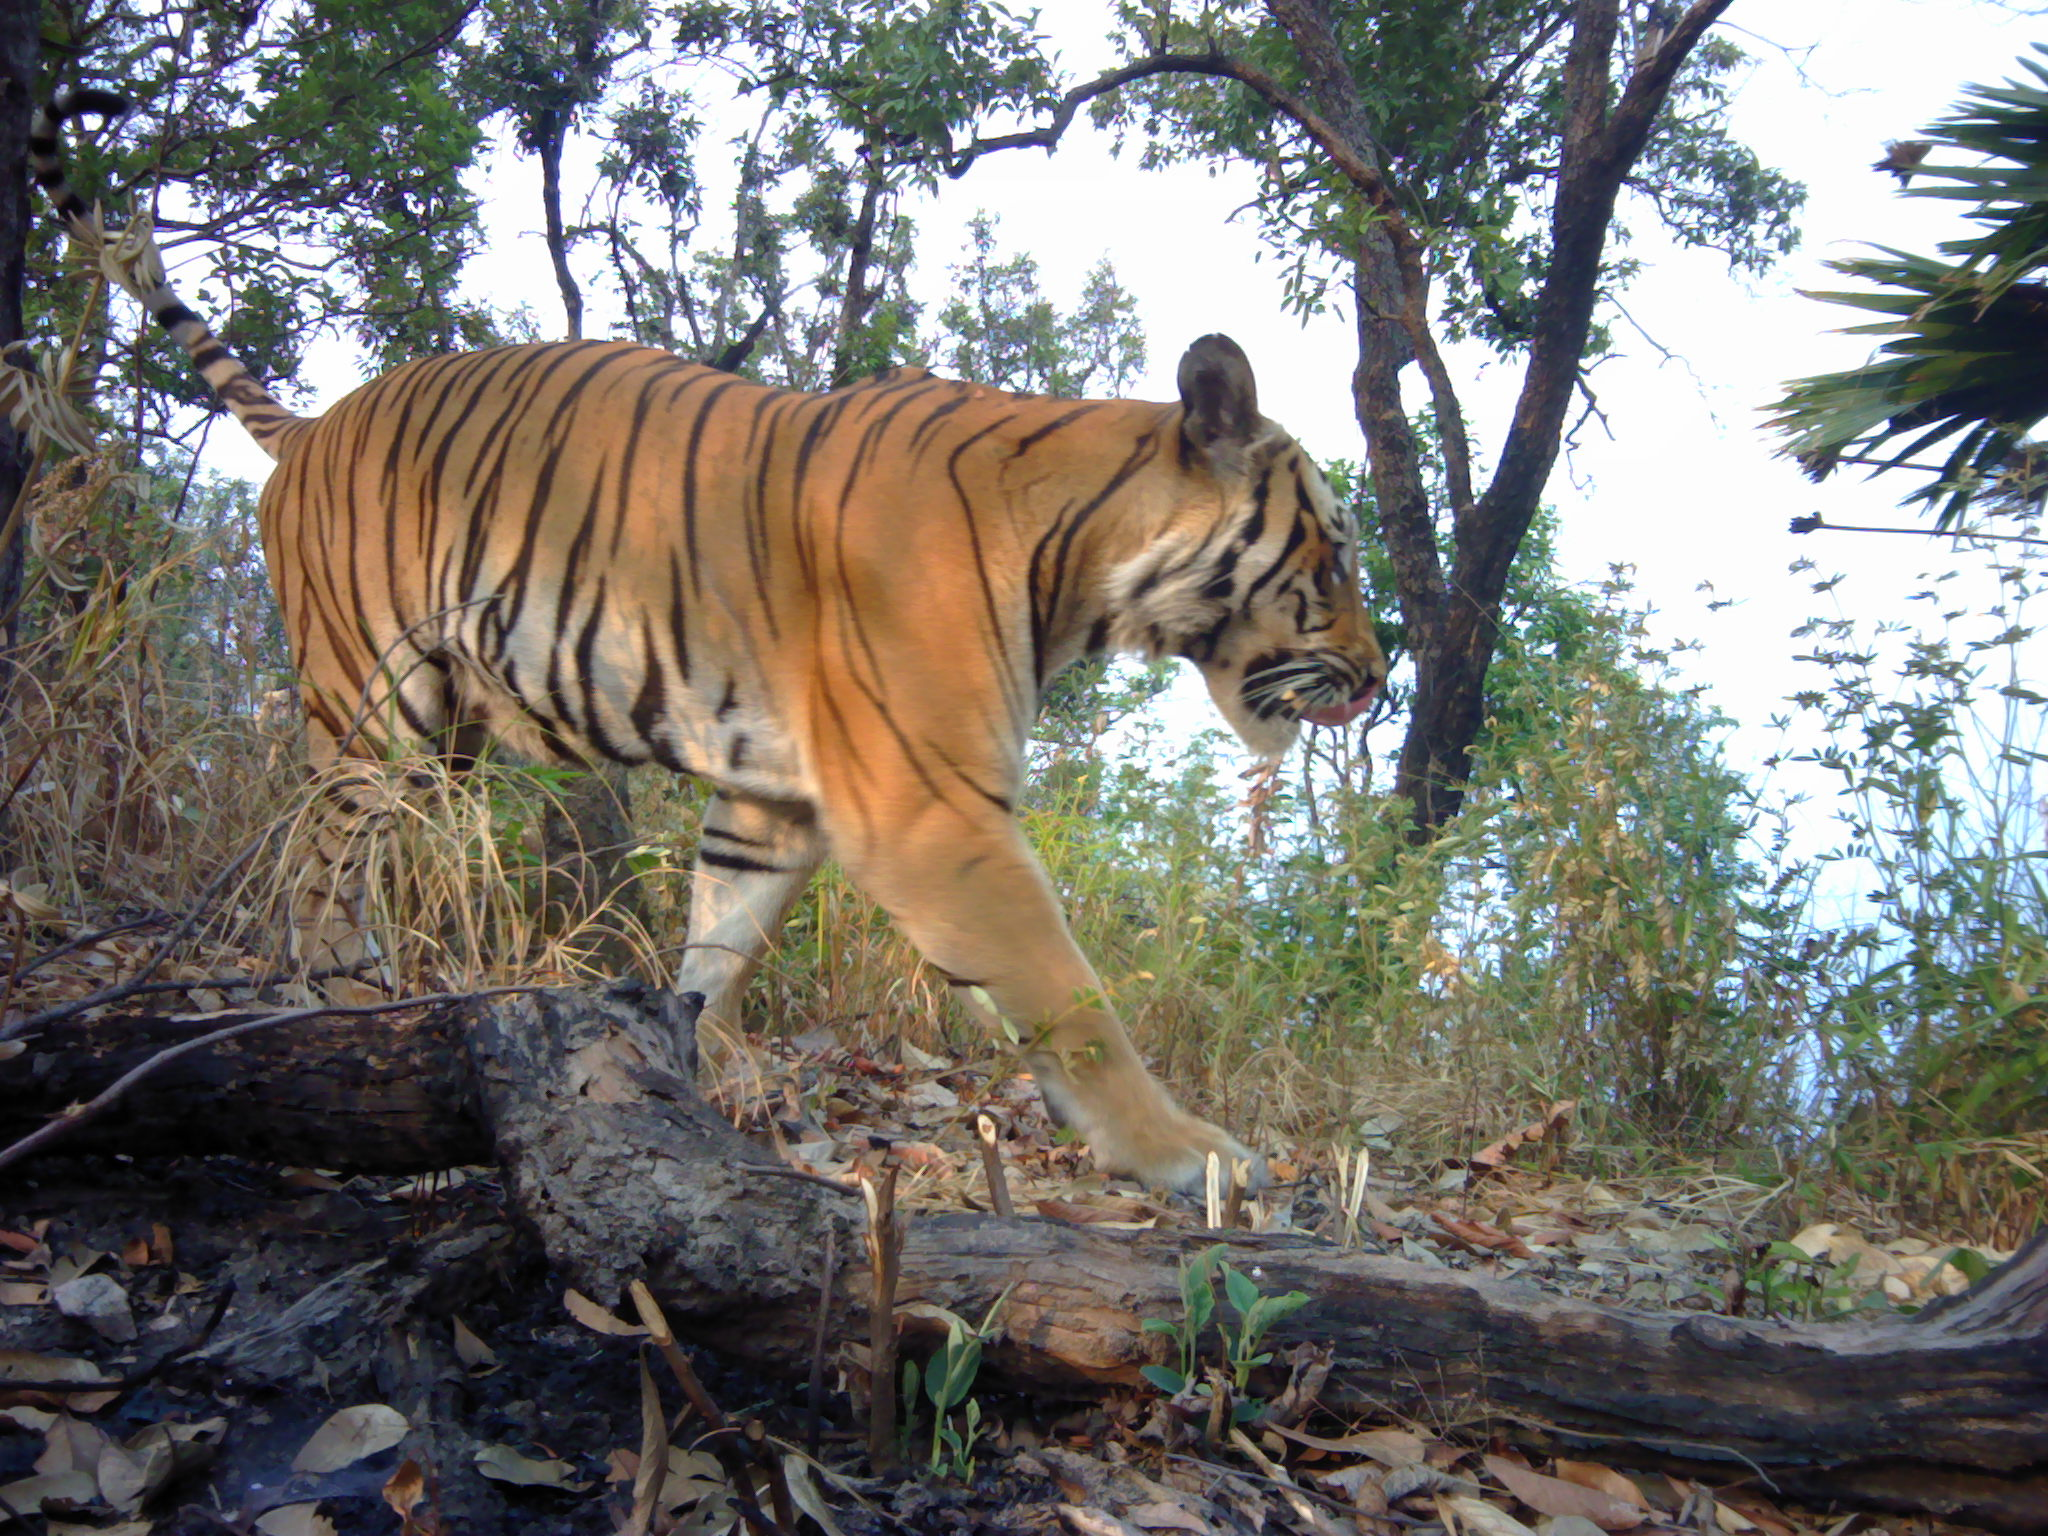 An endangered tiger in western Thailand caught on camera (DNP/PANTHERA/ZSL/RCU/PA)